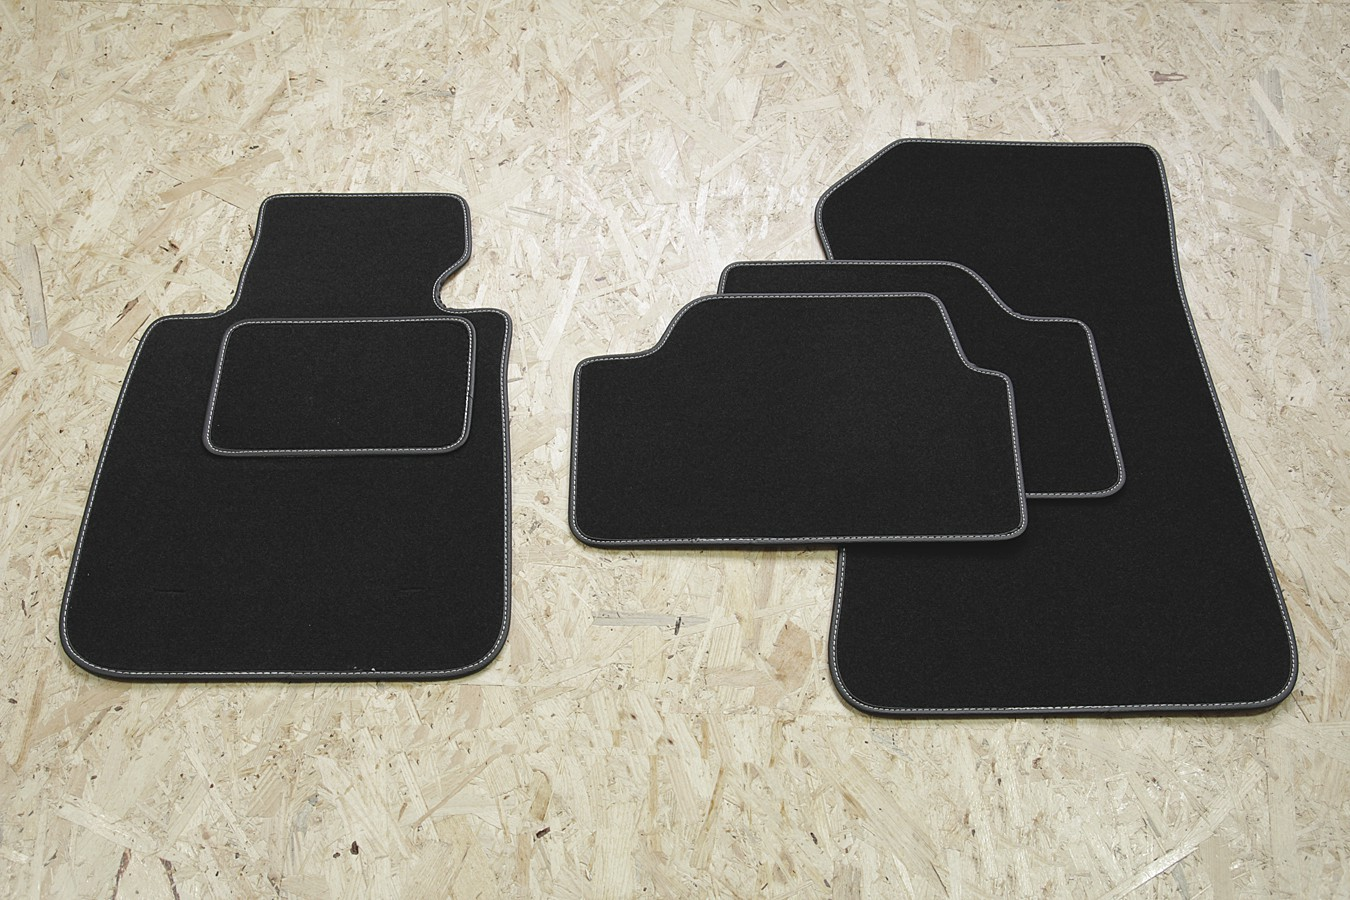 prime tapis de sol pour bmw s rie 1 e87 cinq portes 2004 2011 paillassons pour bmw. Black Bedroom Furniture Sets. Home Design Ideas